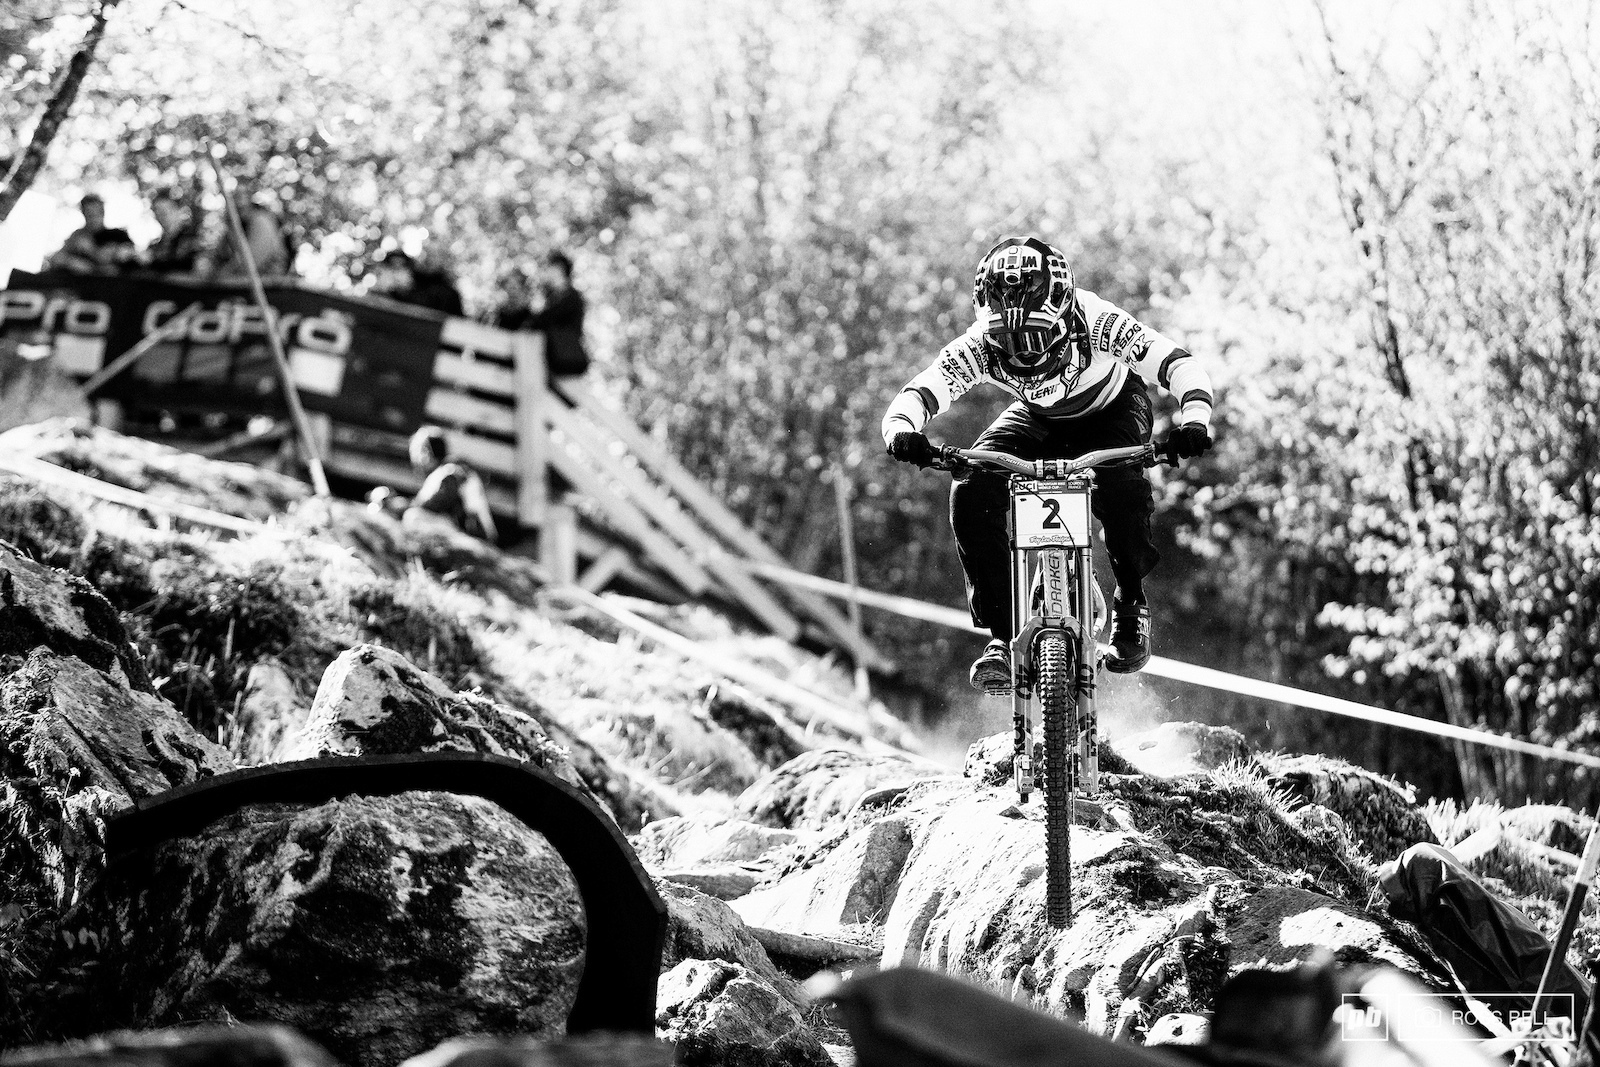 Danny exploding through one of the top rock gardens 4th place 0.6 back... Hart is well and truly in the hunt.